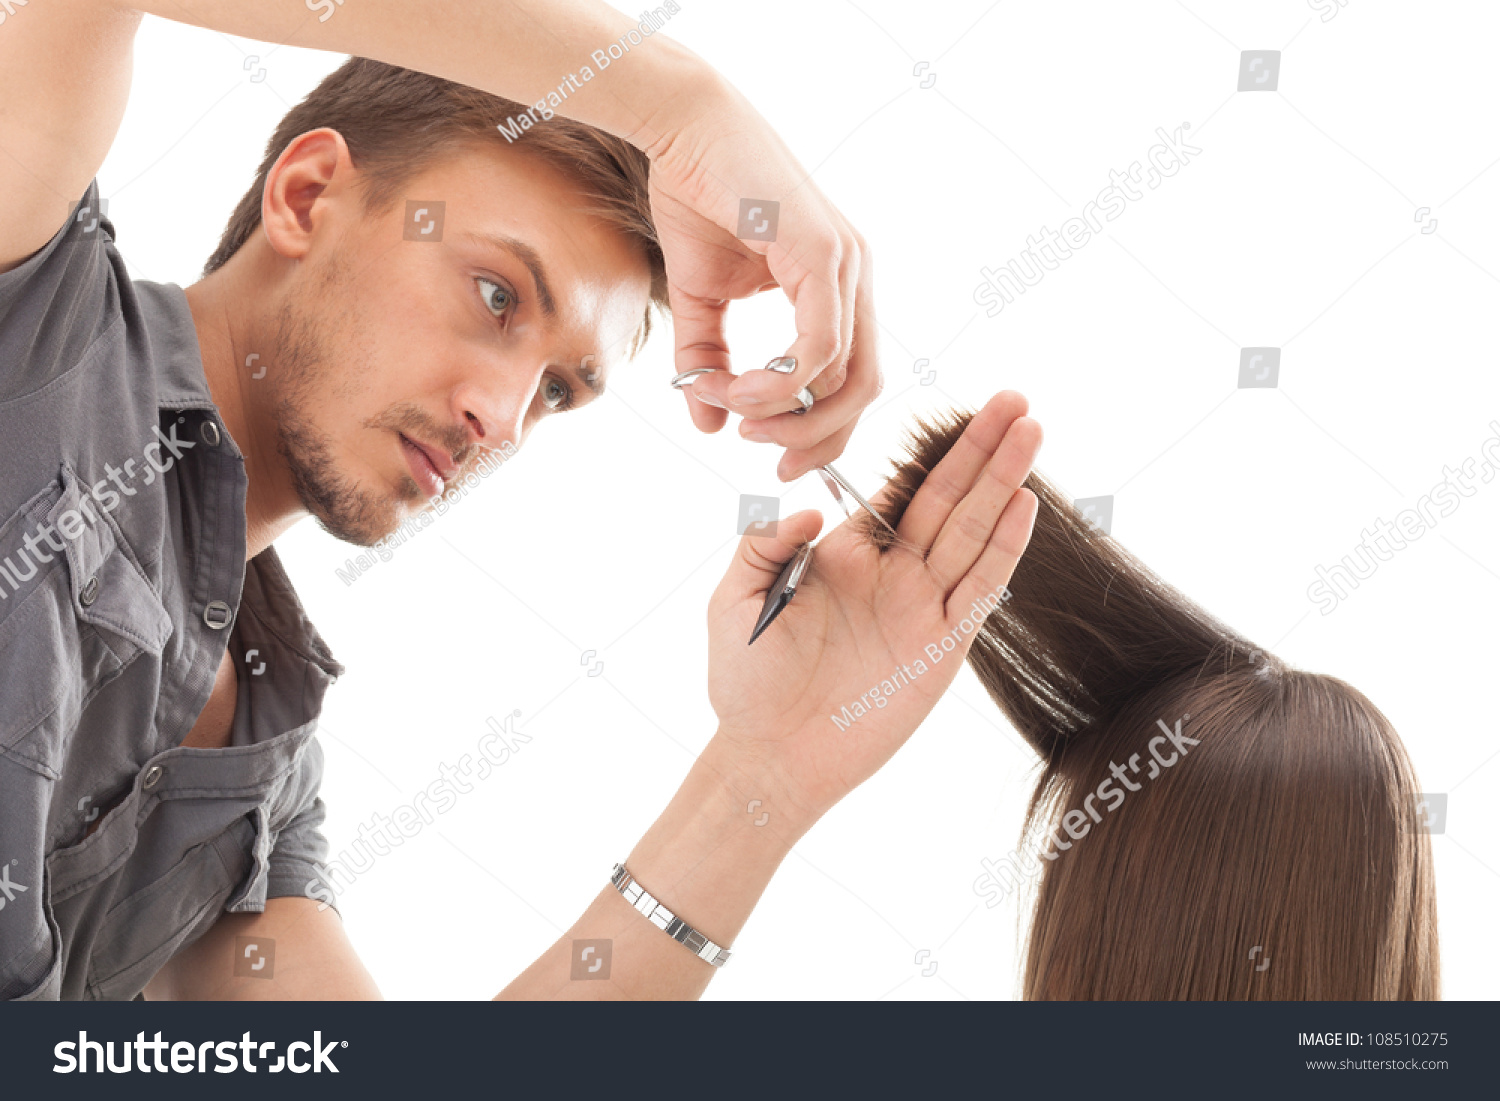 Professional Hairdresser : Professional Hairdresser With Long Hair Model Stock Photo 108510275 ...